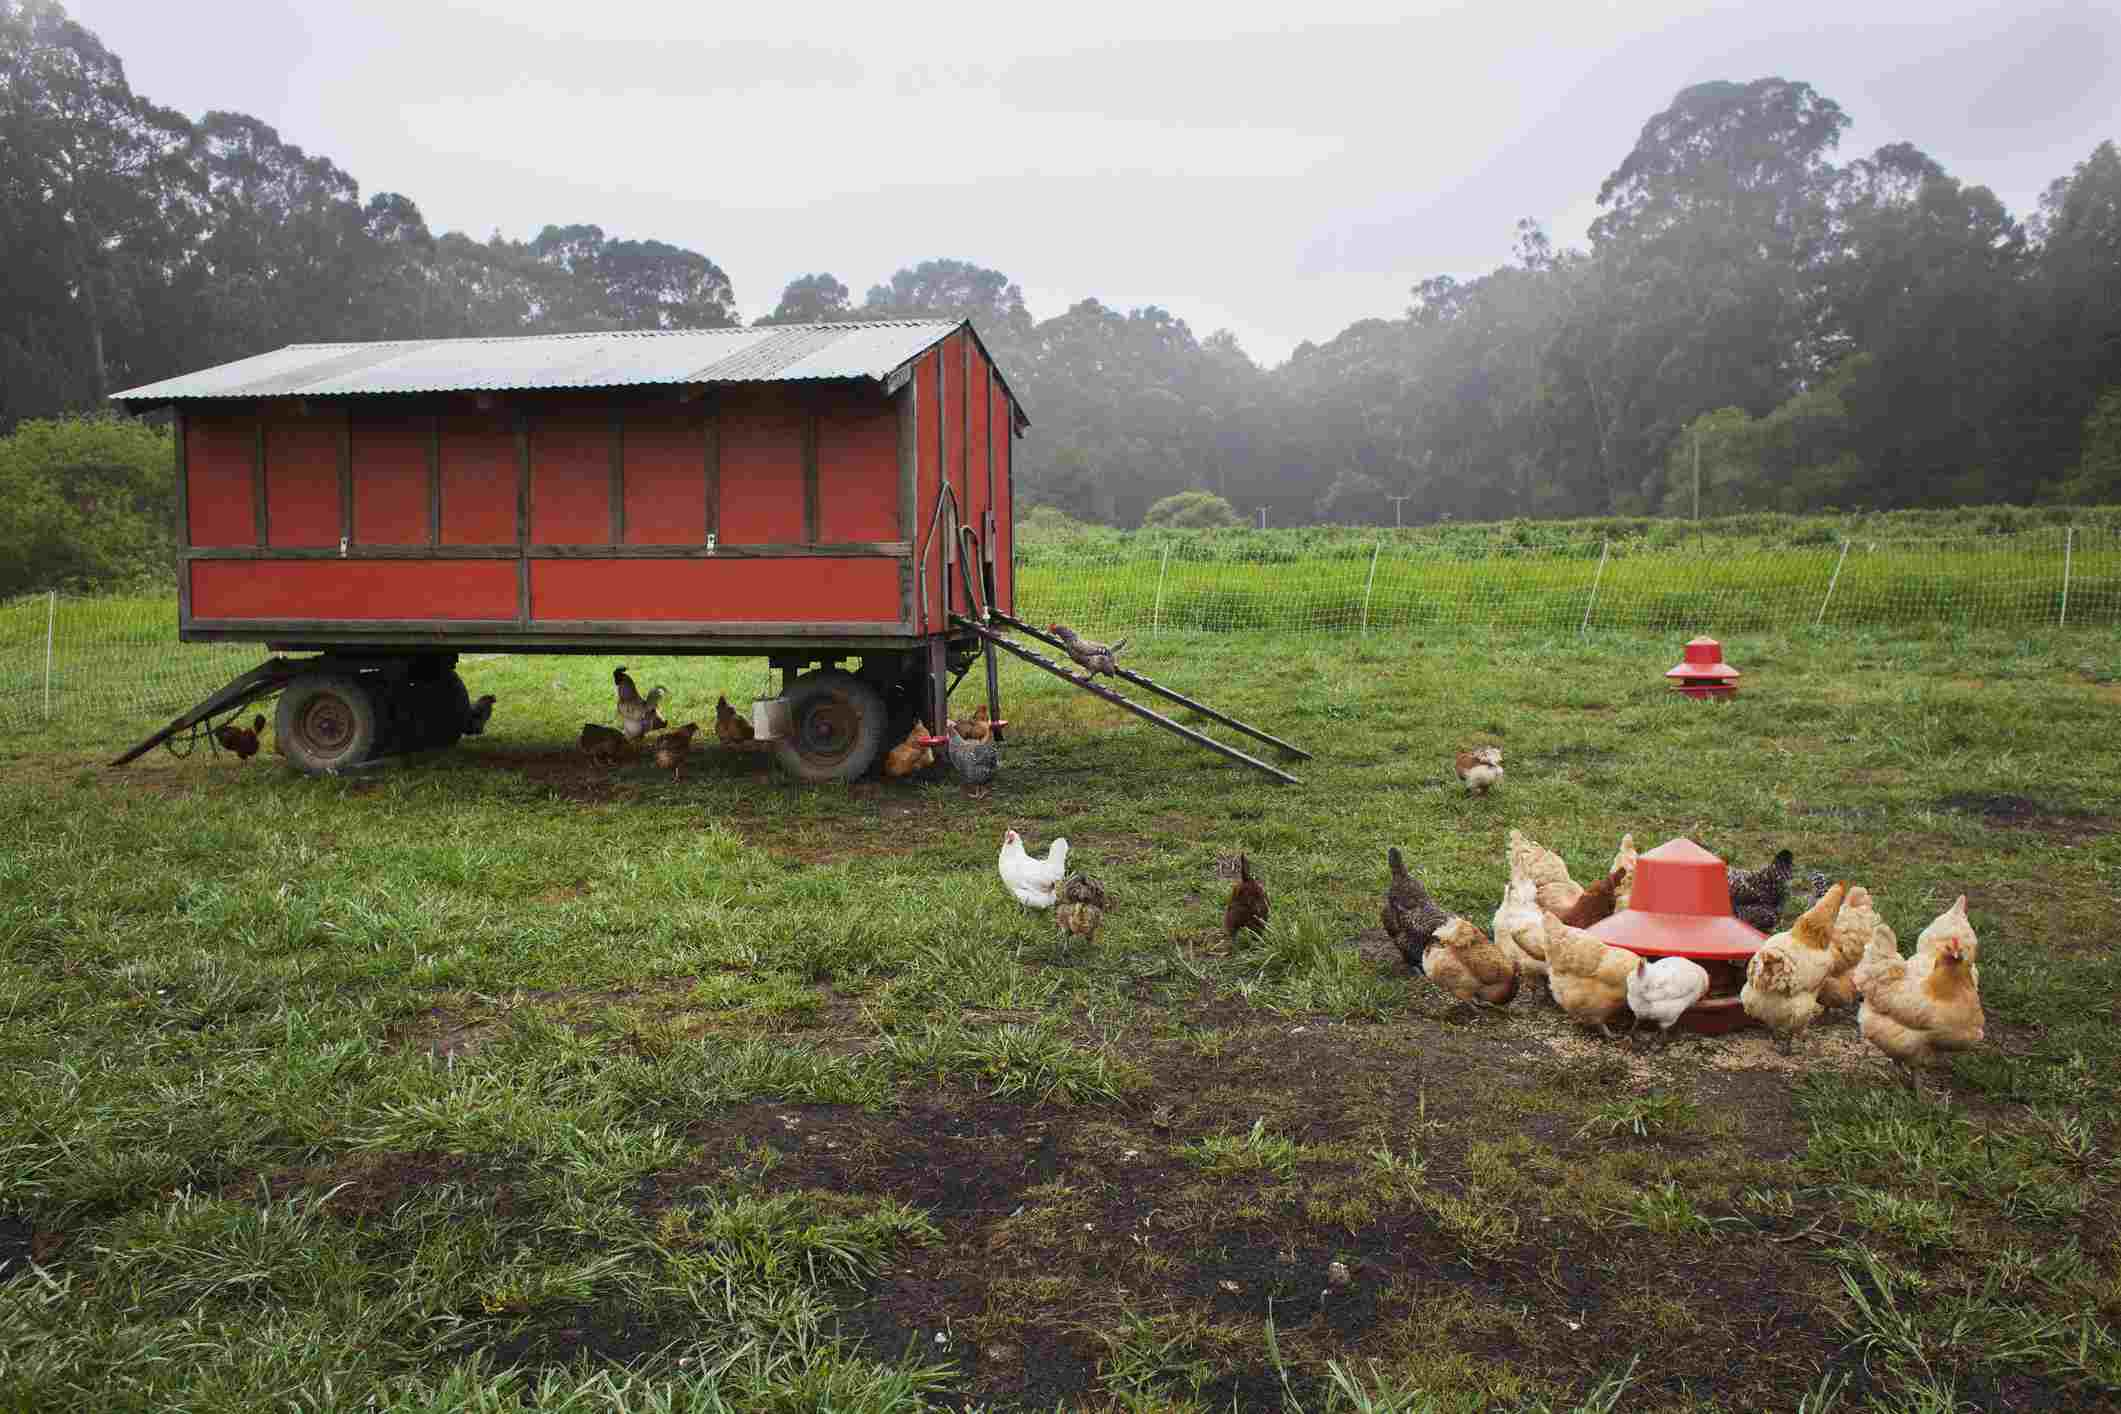 ree range chickens feeding outside a mobile coop